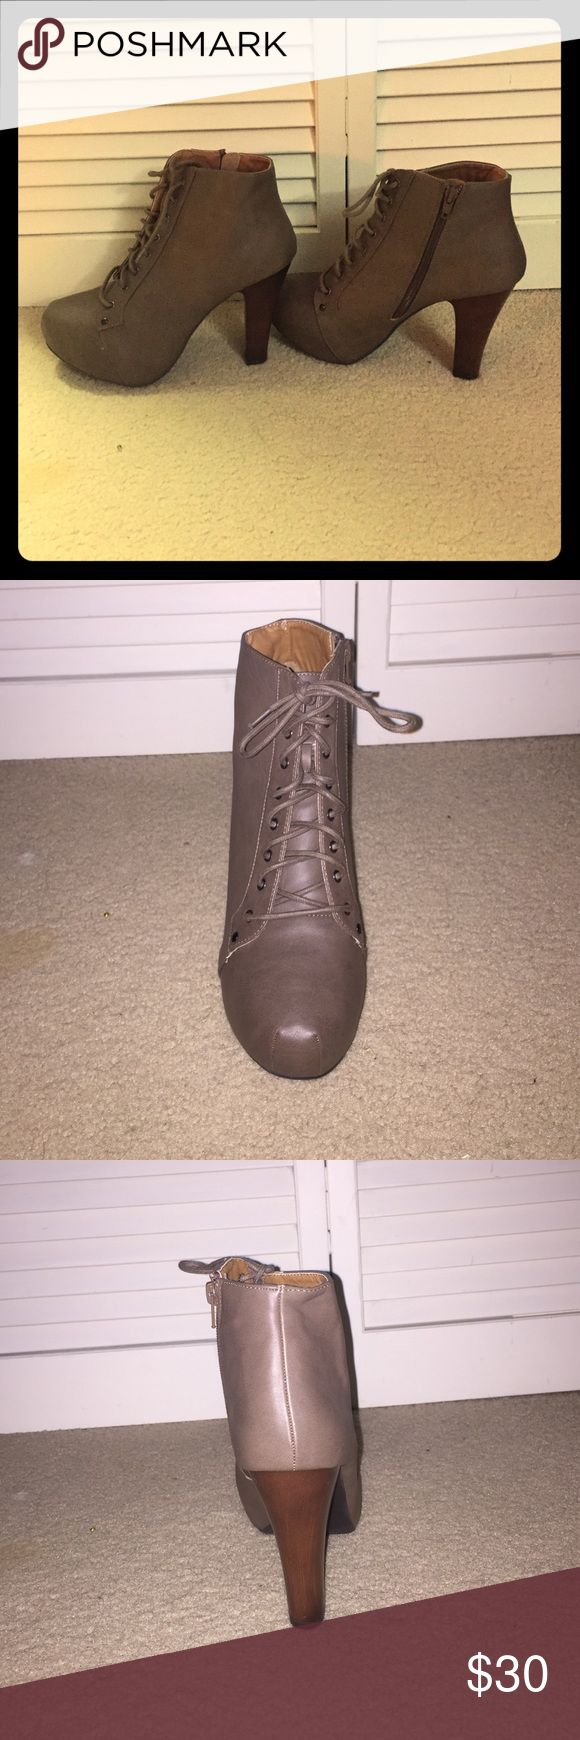 Brown Heeled Boots NEVER WORN! Approximately a 3-4 inch heel and lace-up front. Shoes Heeled Boots